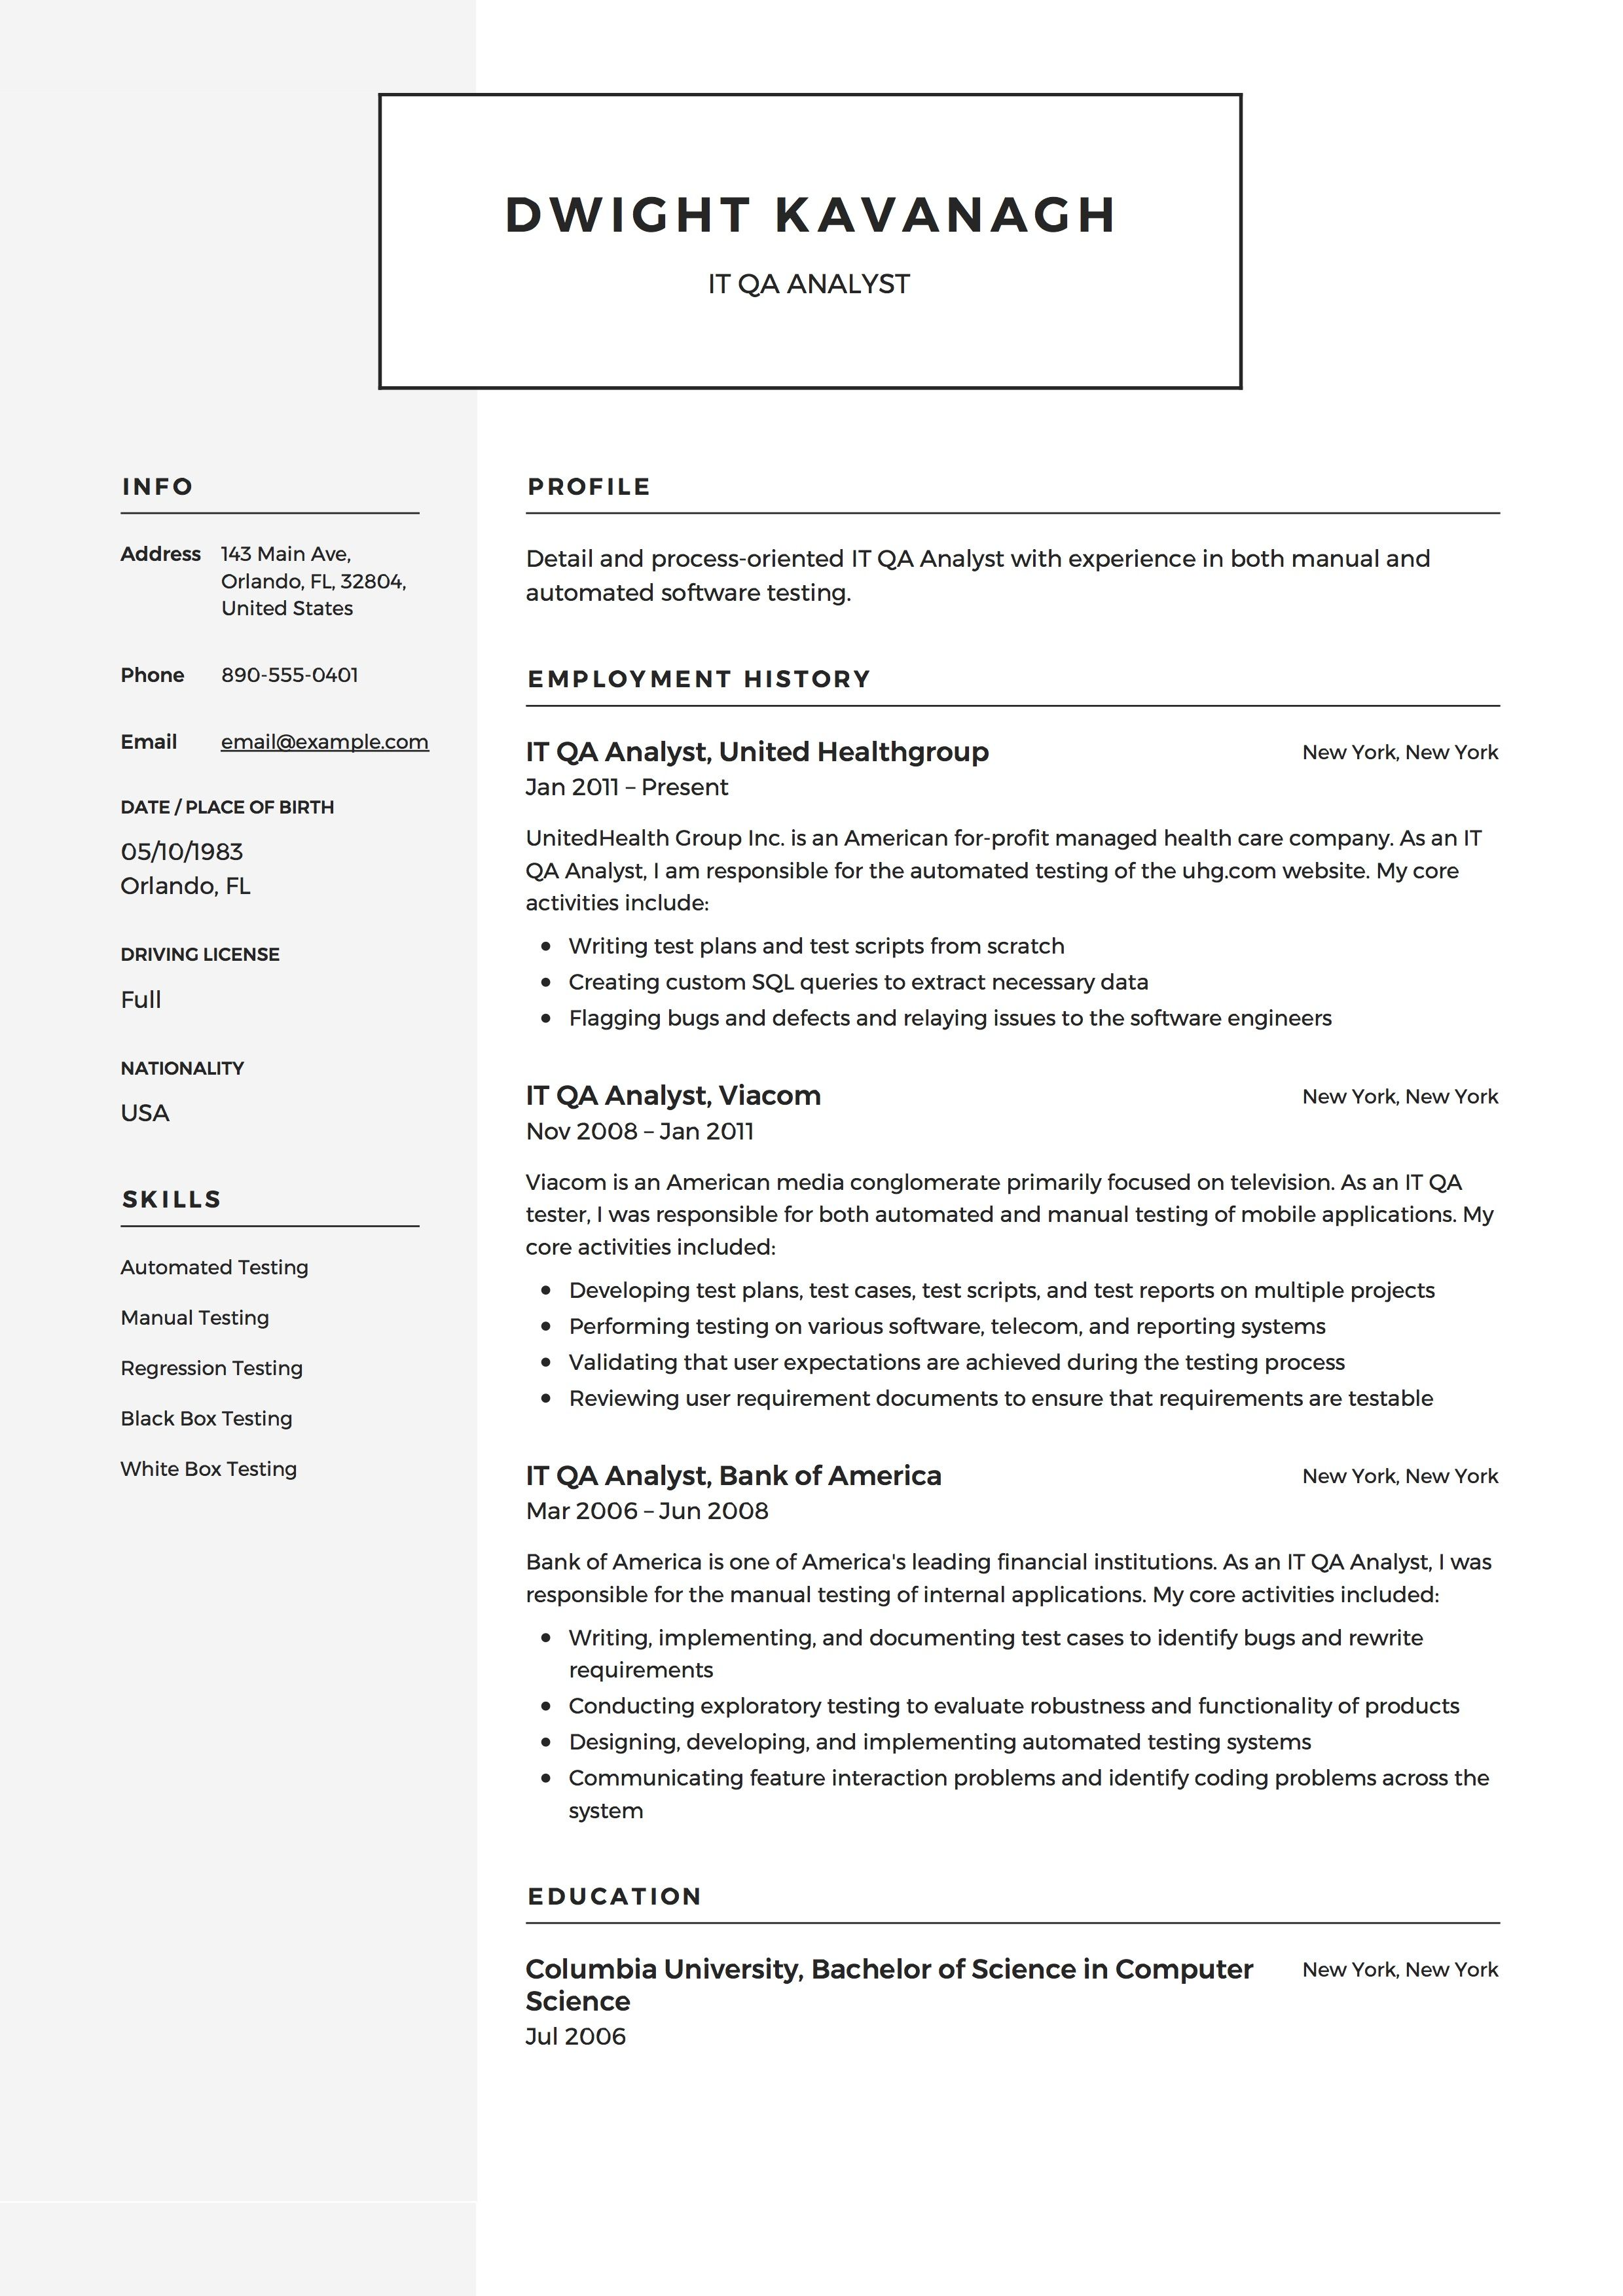 It Qa Analyst Resume Guide Resume Examples Resume Guide Good